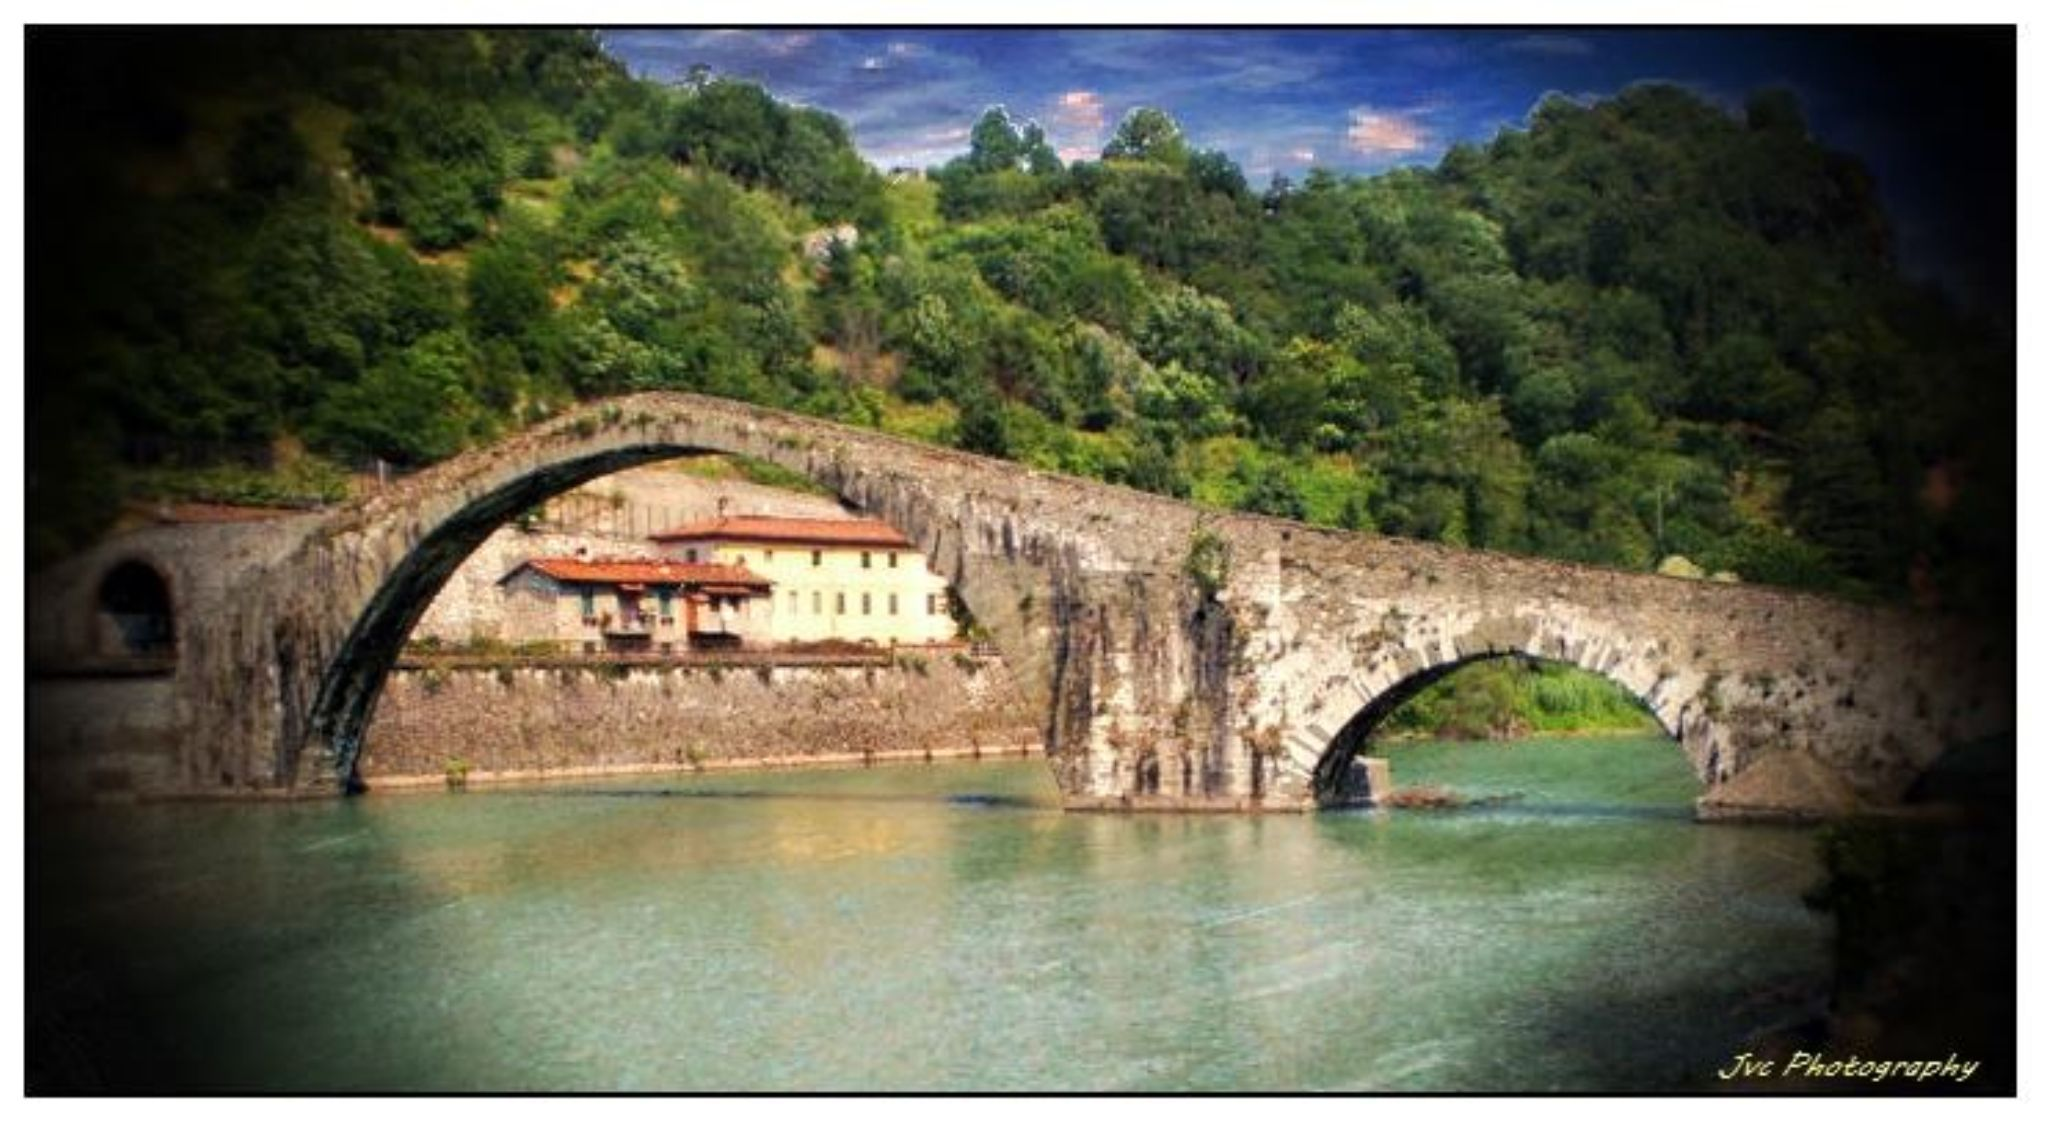 Devils bridge,italy by jvcphotography75